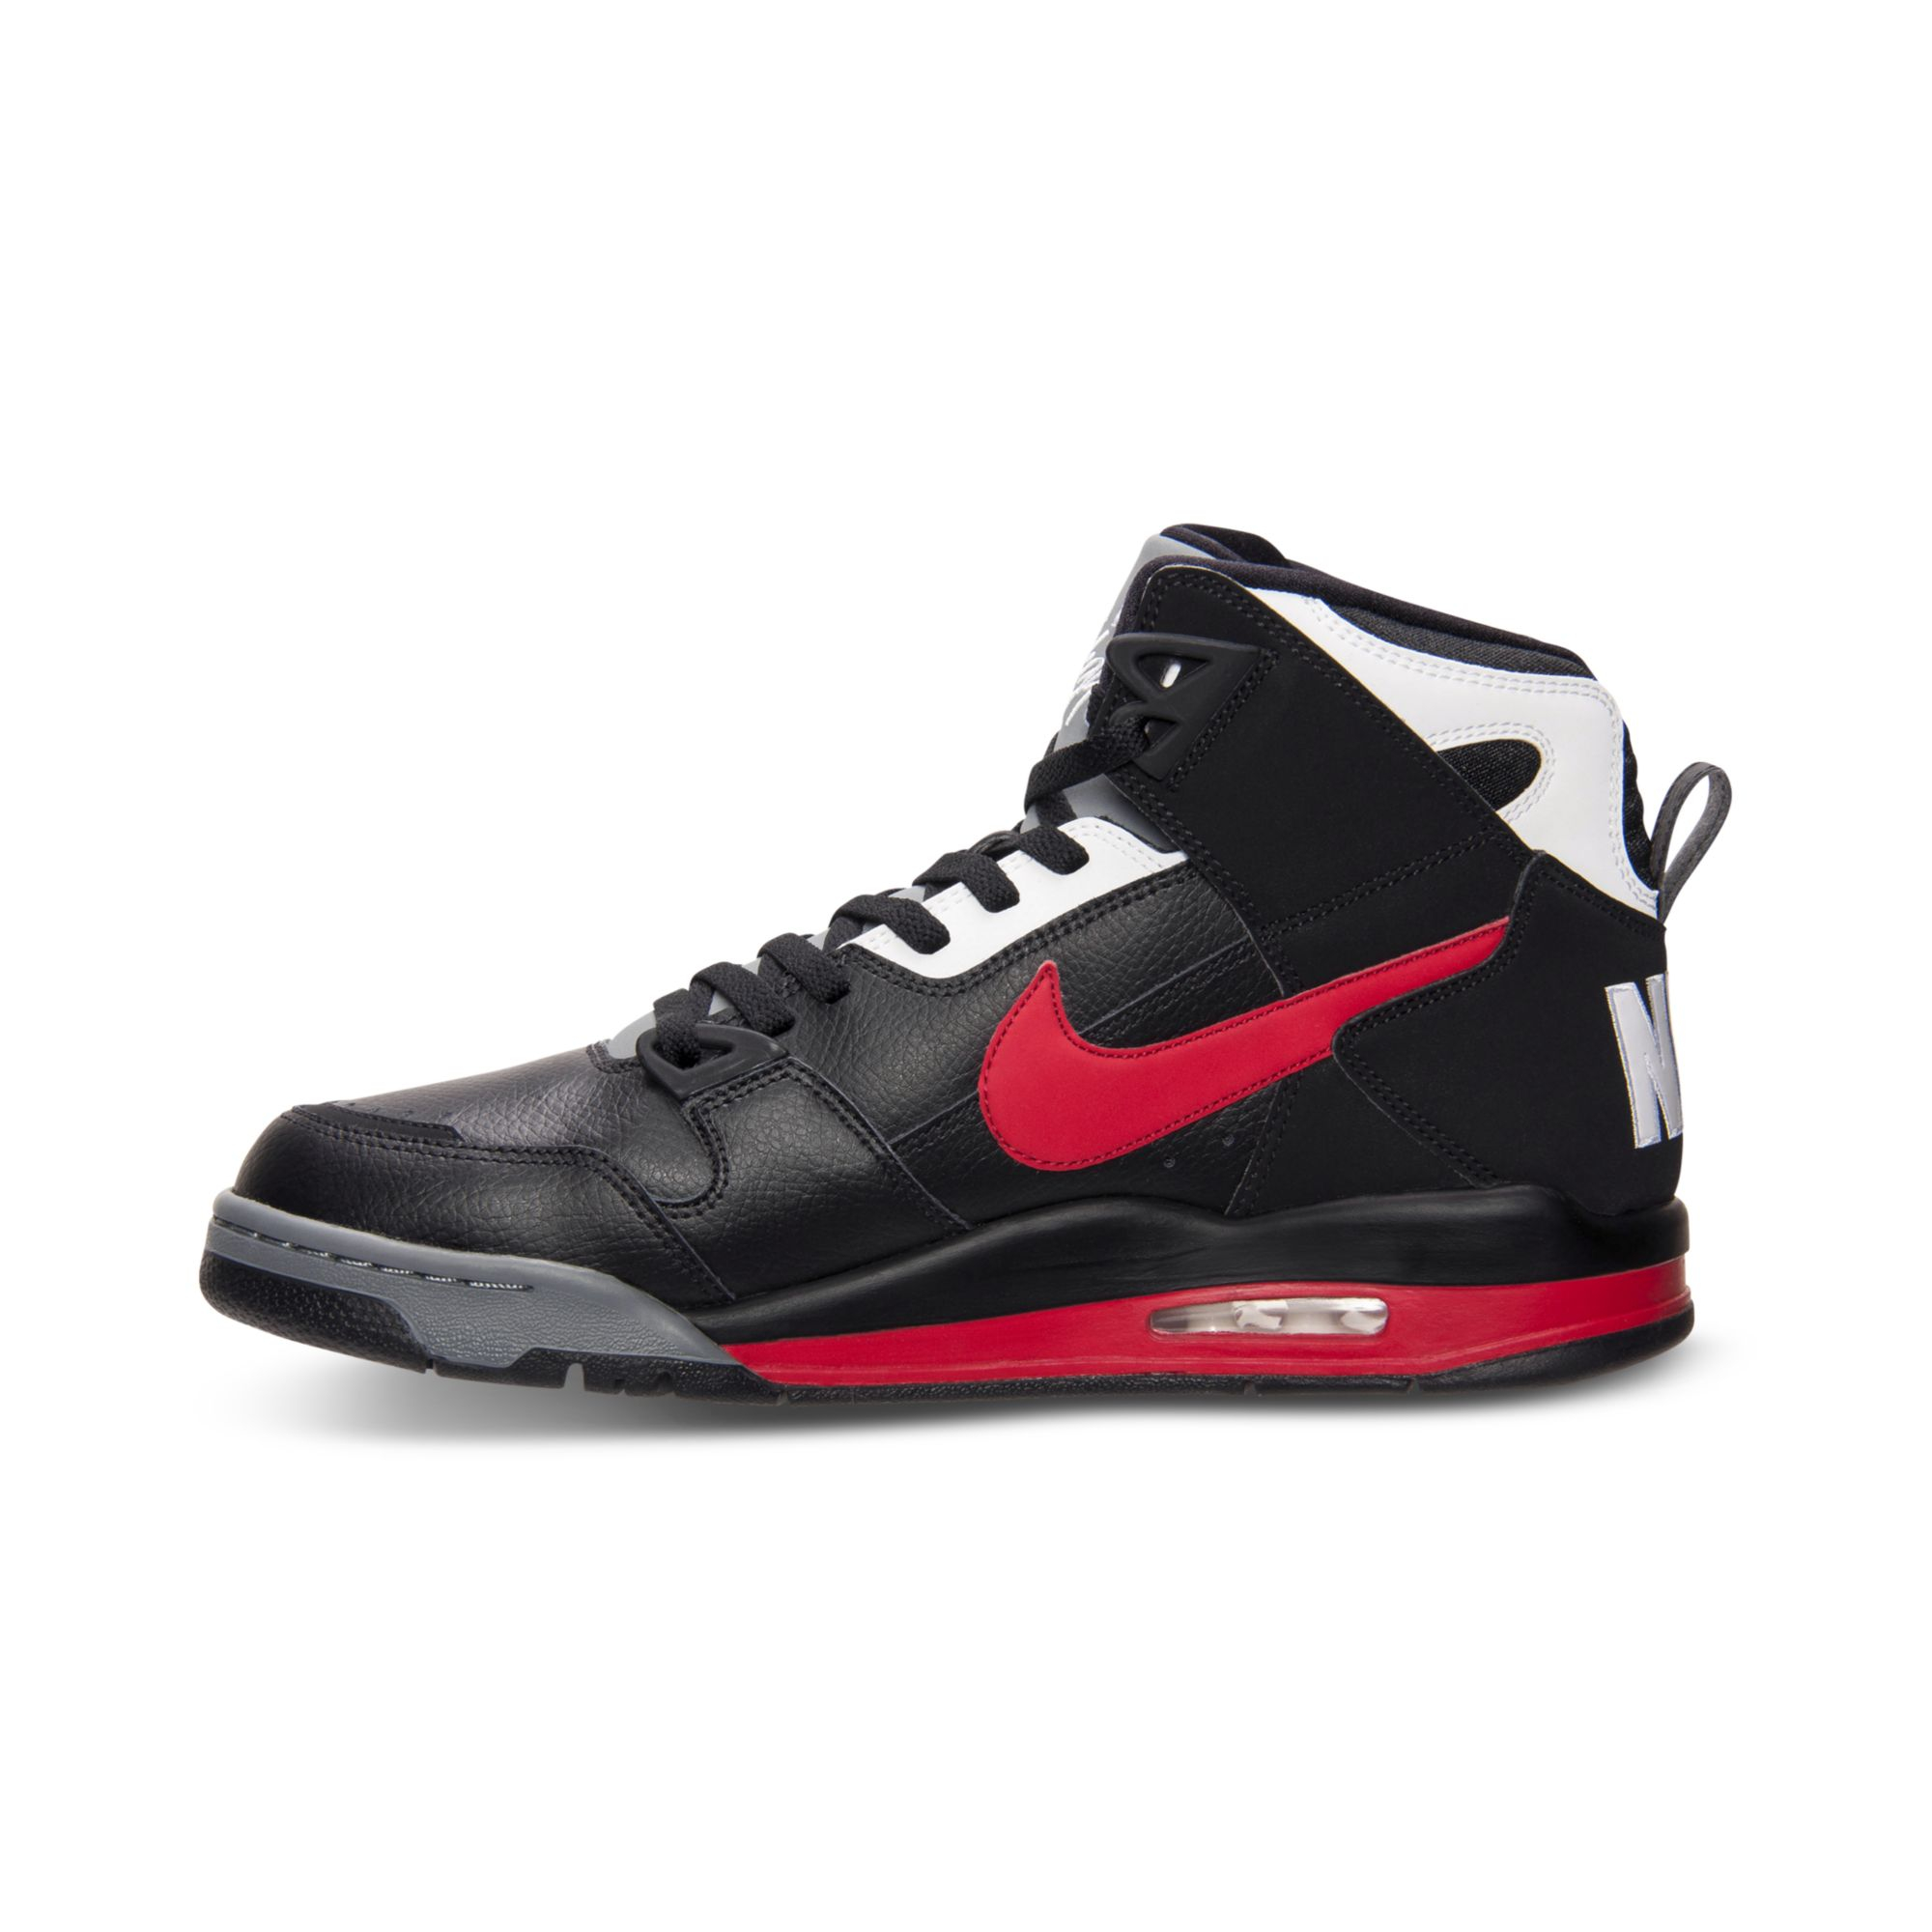 Lyst - Nike Air Flight Condor High Basketball Sneakers in ...